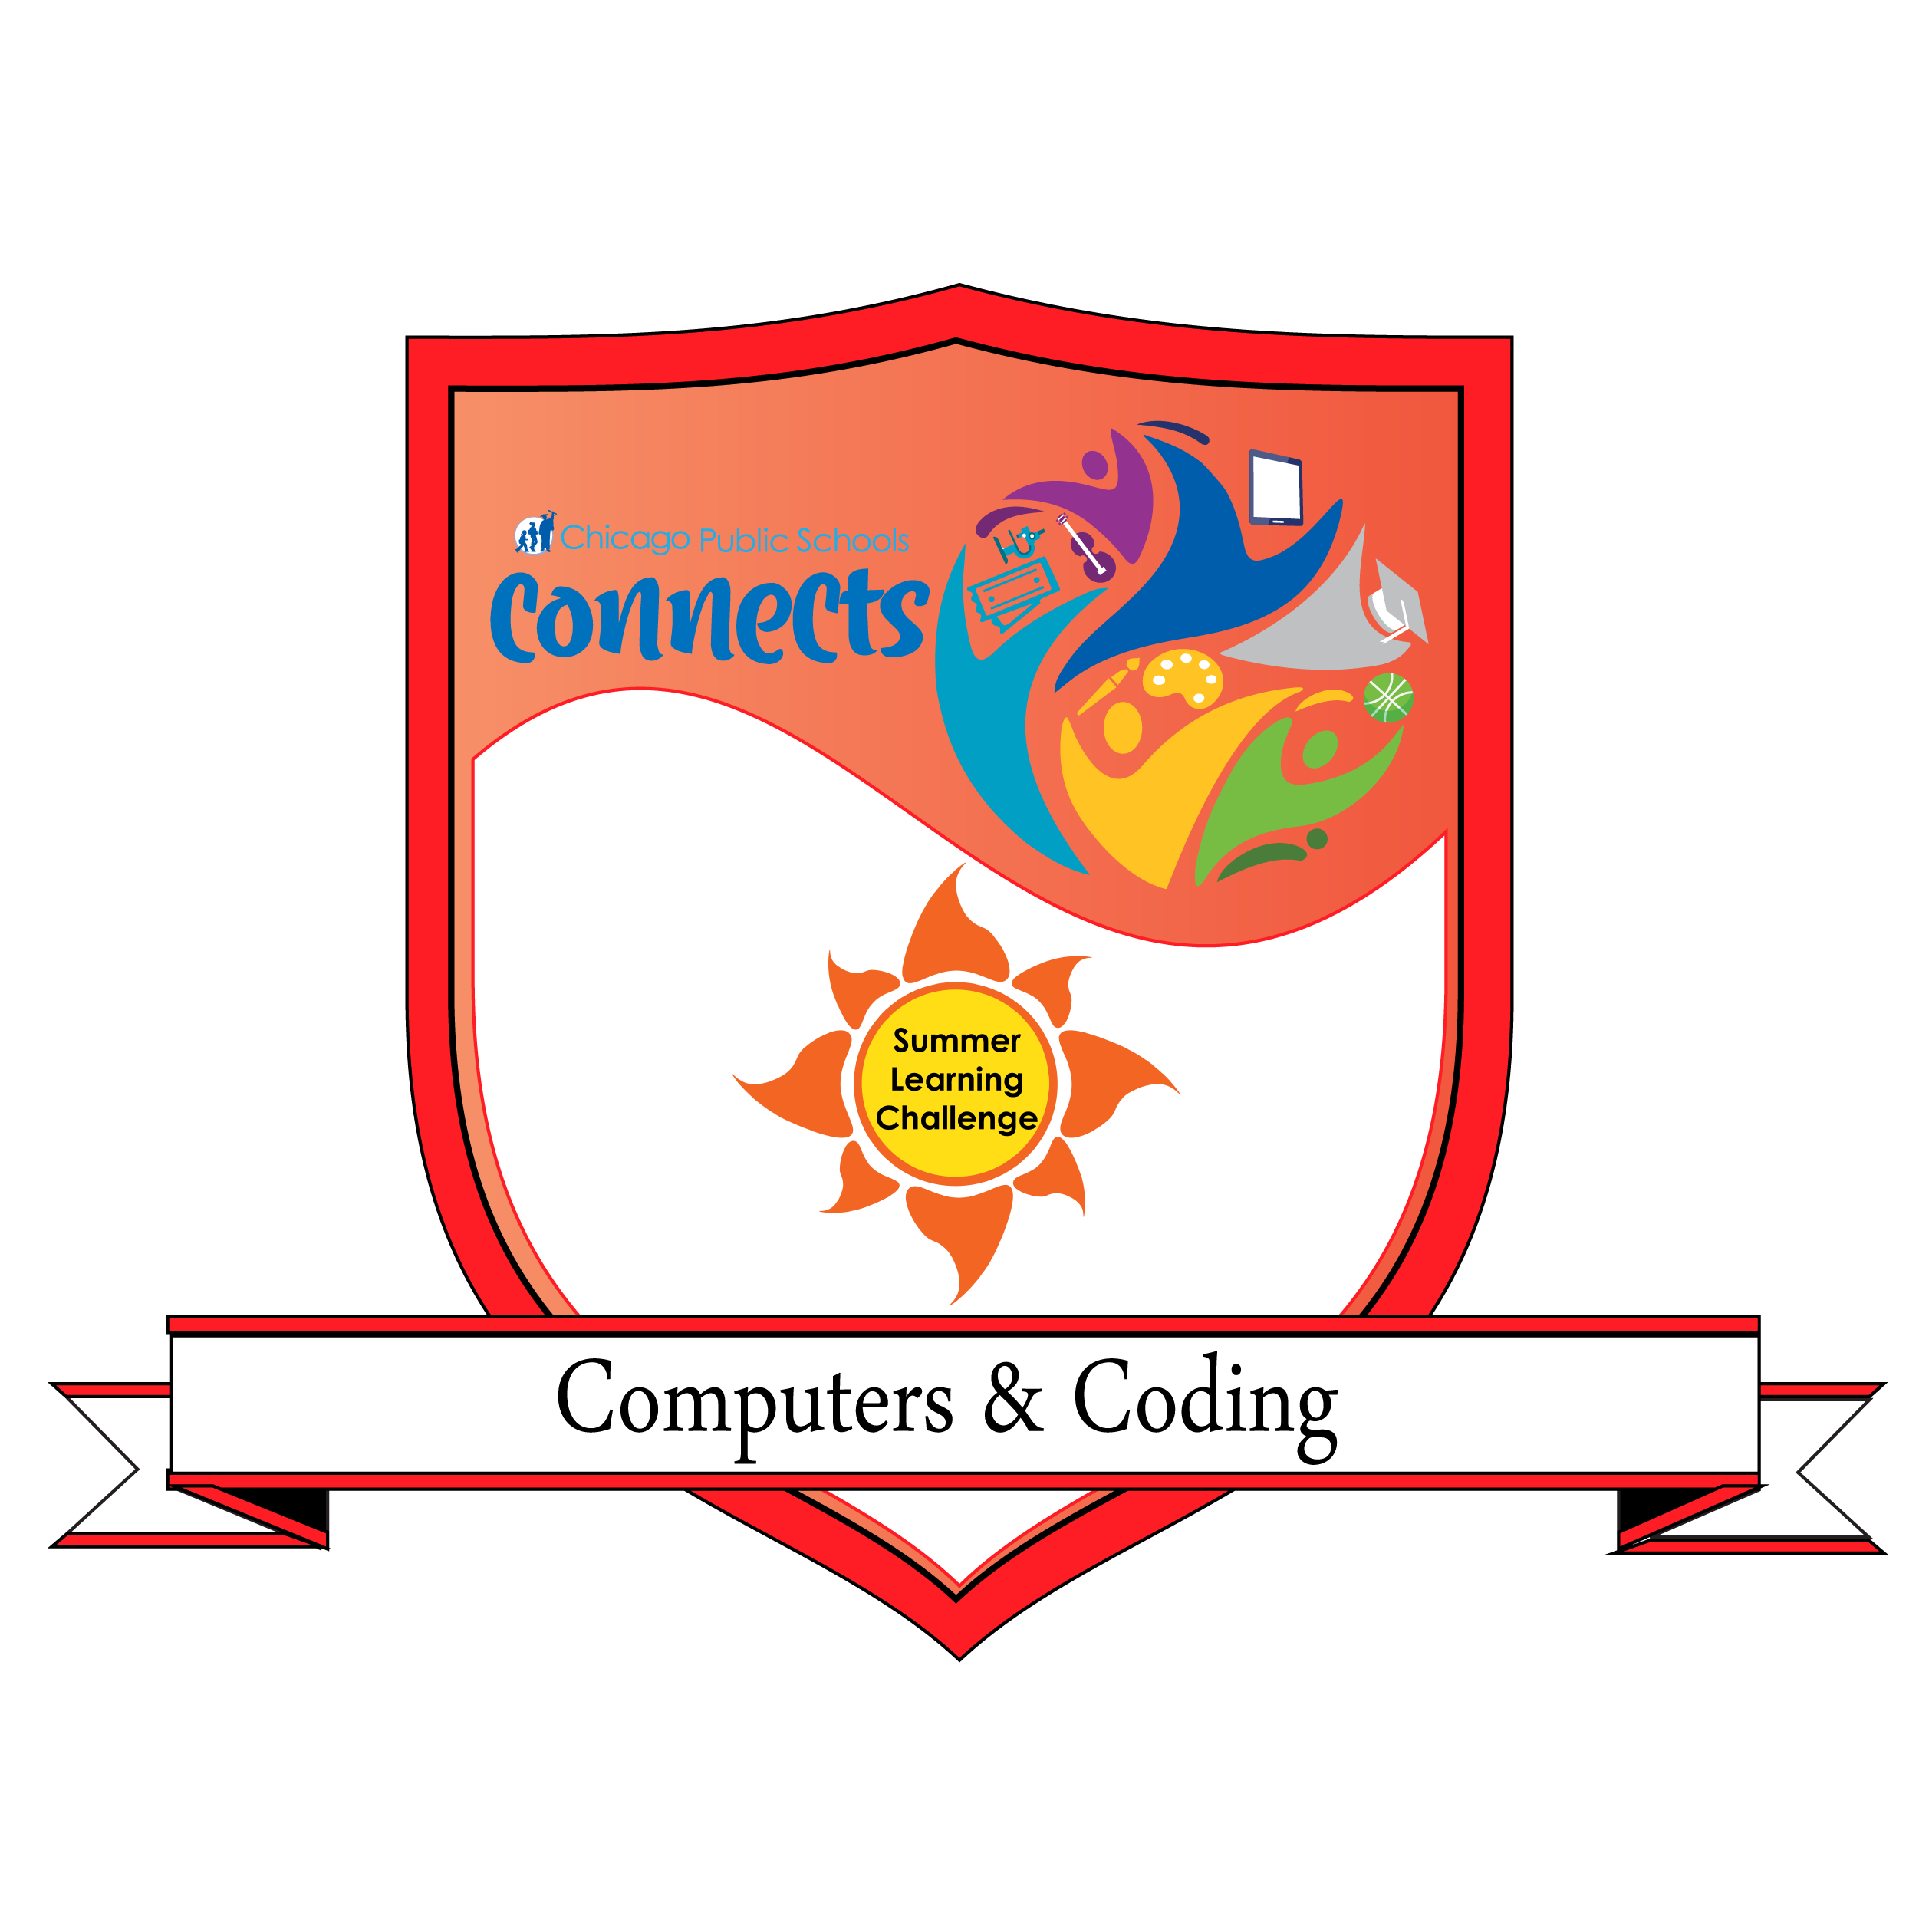 CPS Connects Summer 2016: Computers & Coding